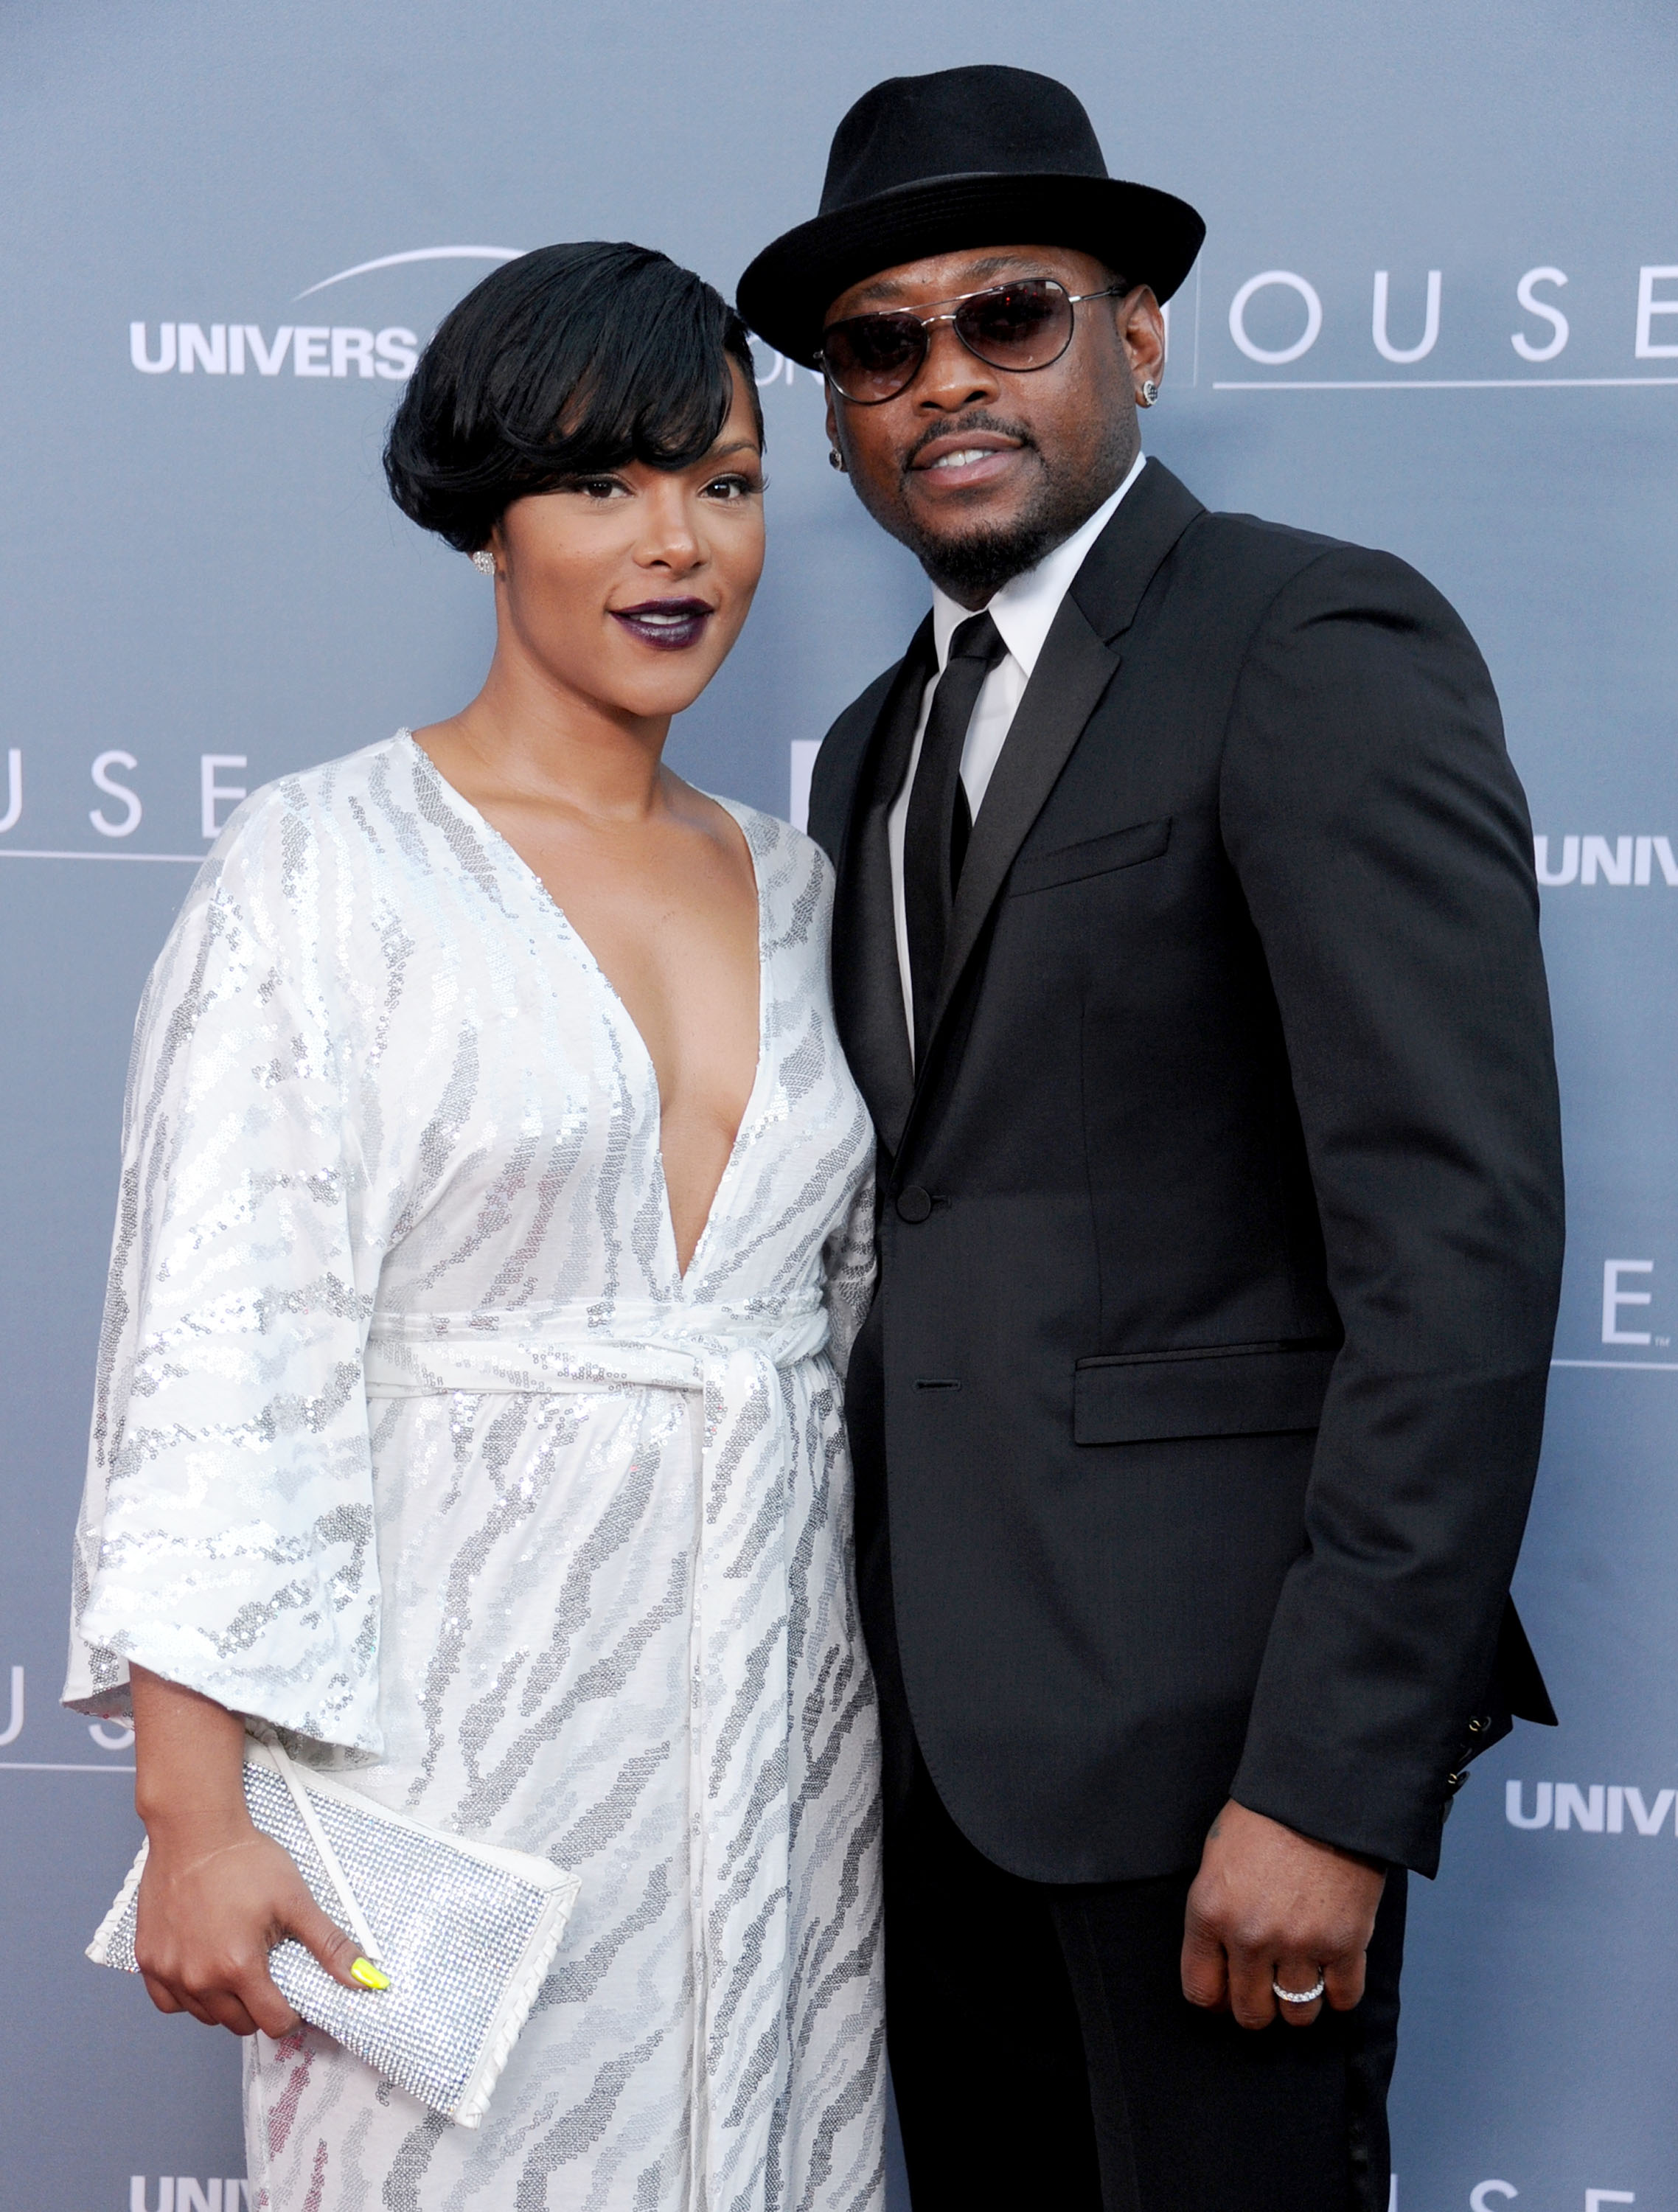 """Keisha and Omar Epps at the Fox Network's """"House"""" Series Finale Wrap Party on April 20, 2012 in Los Angeles, California.   Photo: Getty Images"""